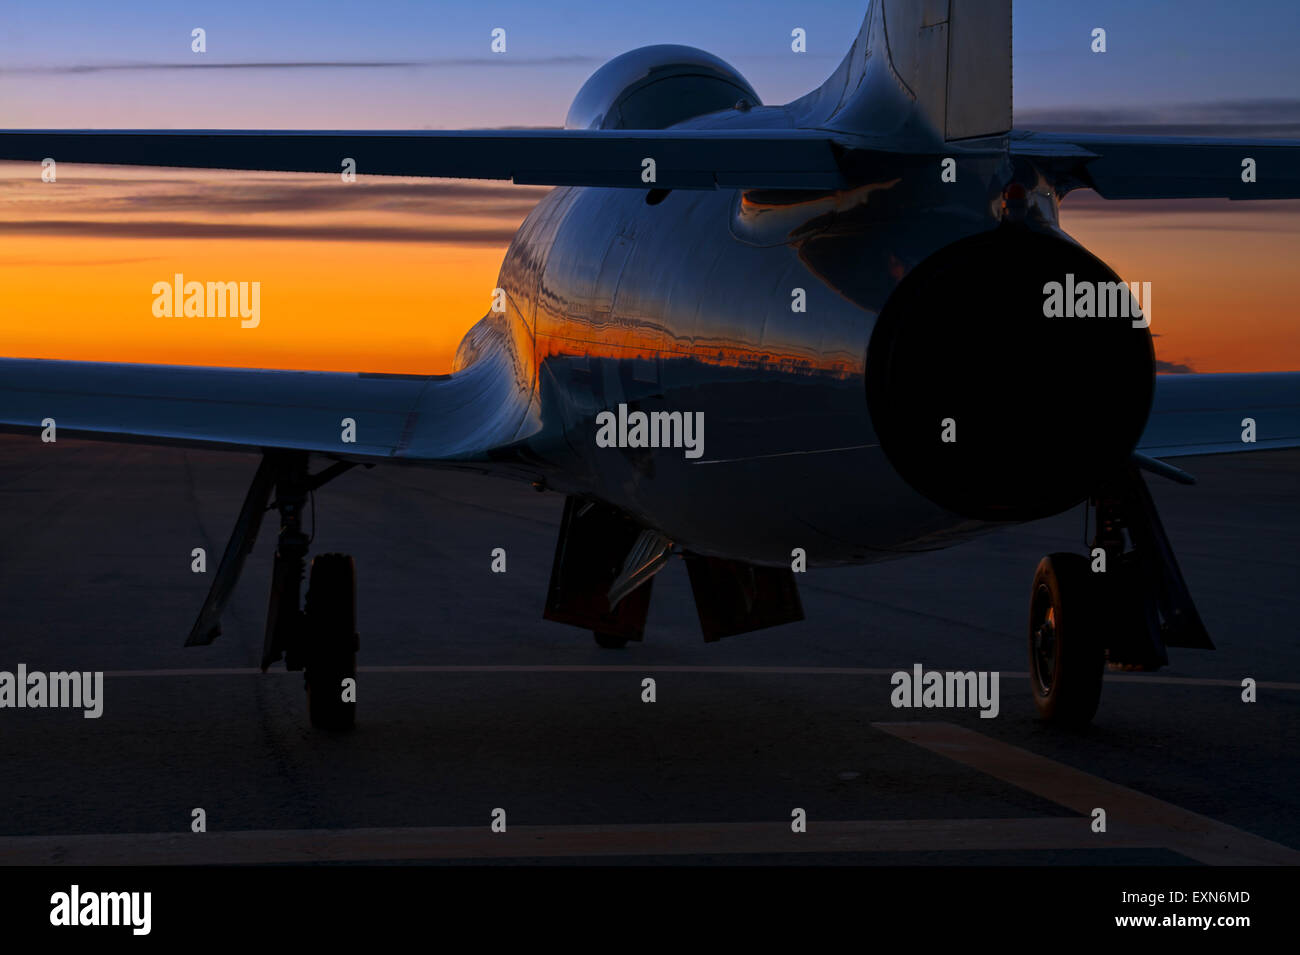 Lockheed T-33 Shooting Star at Sunset. - Stock Image